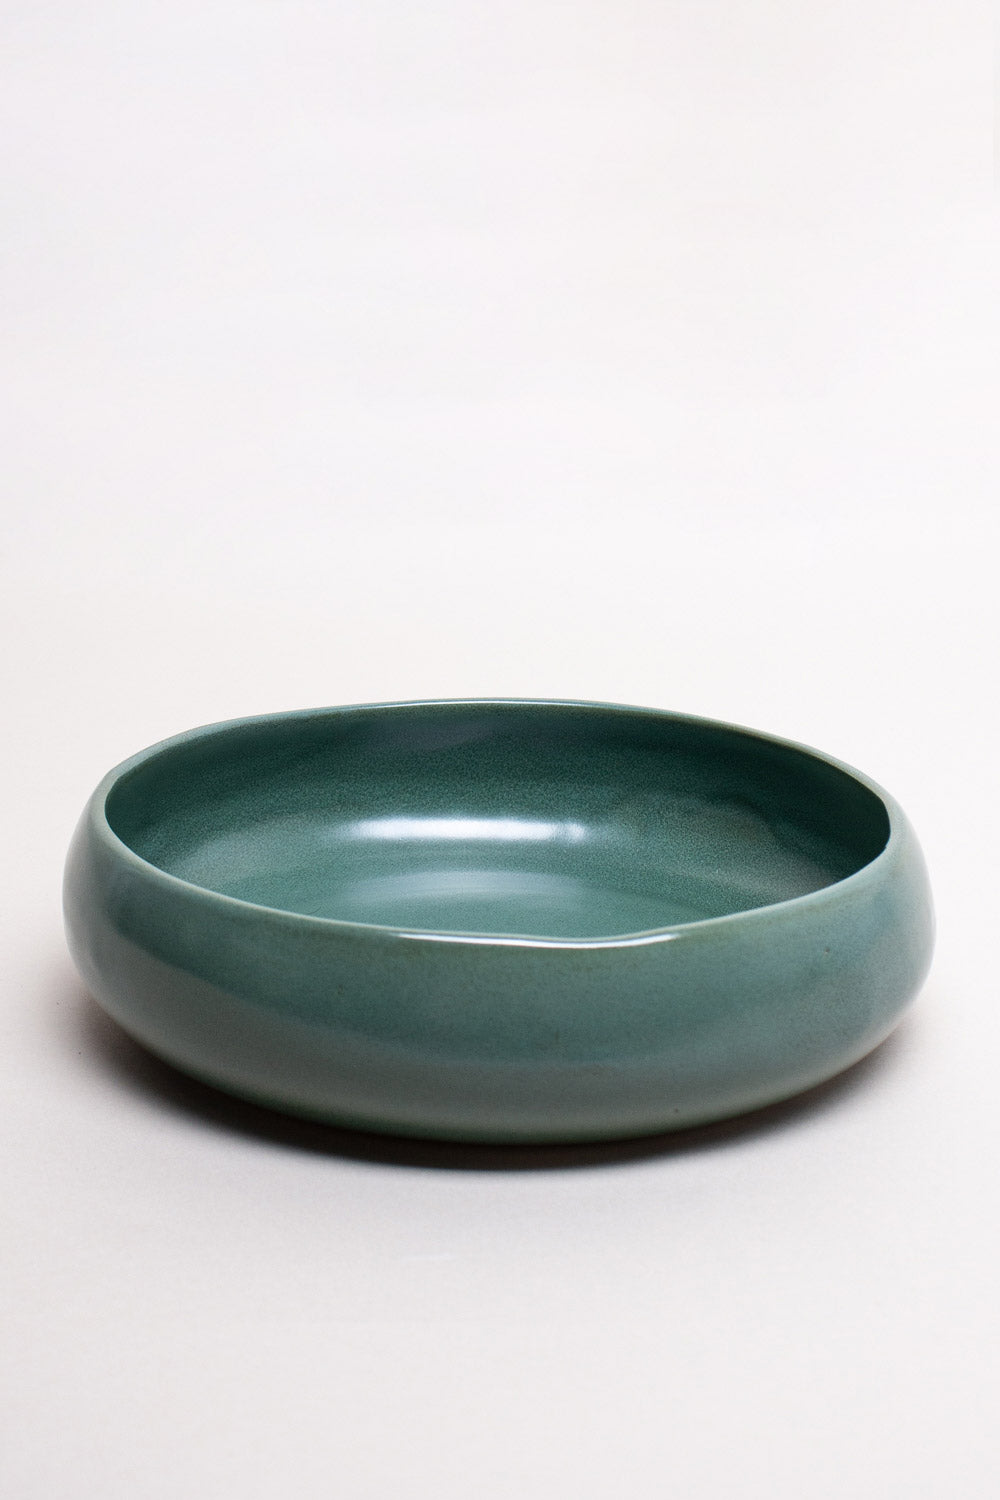 Nara Large Bowl in Fern